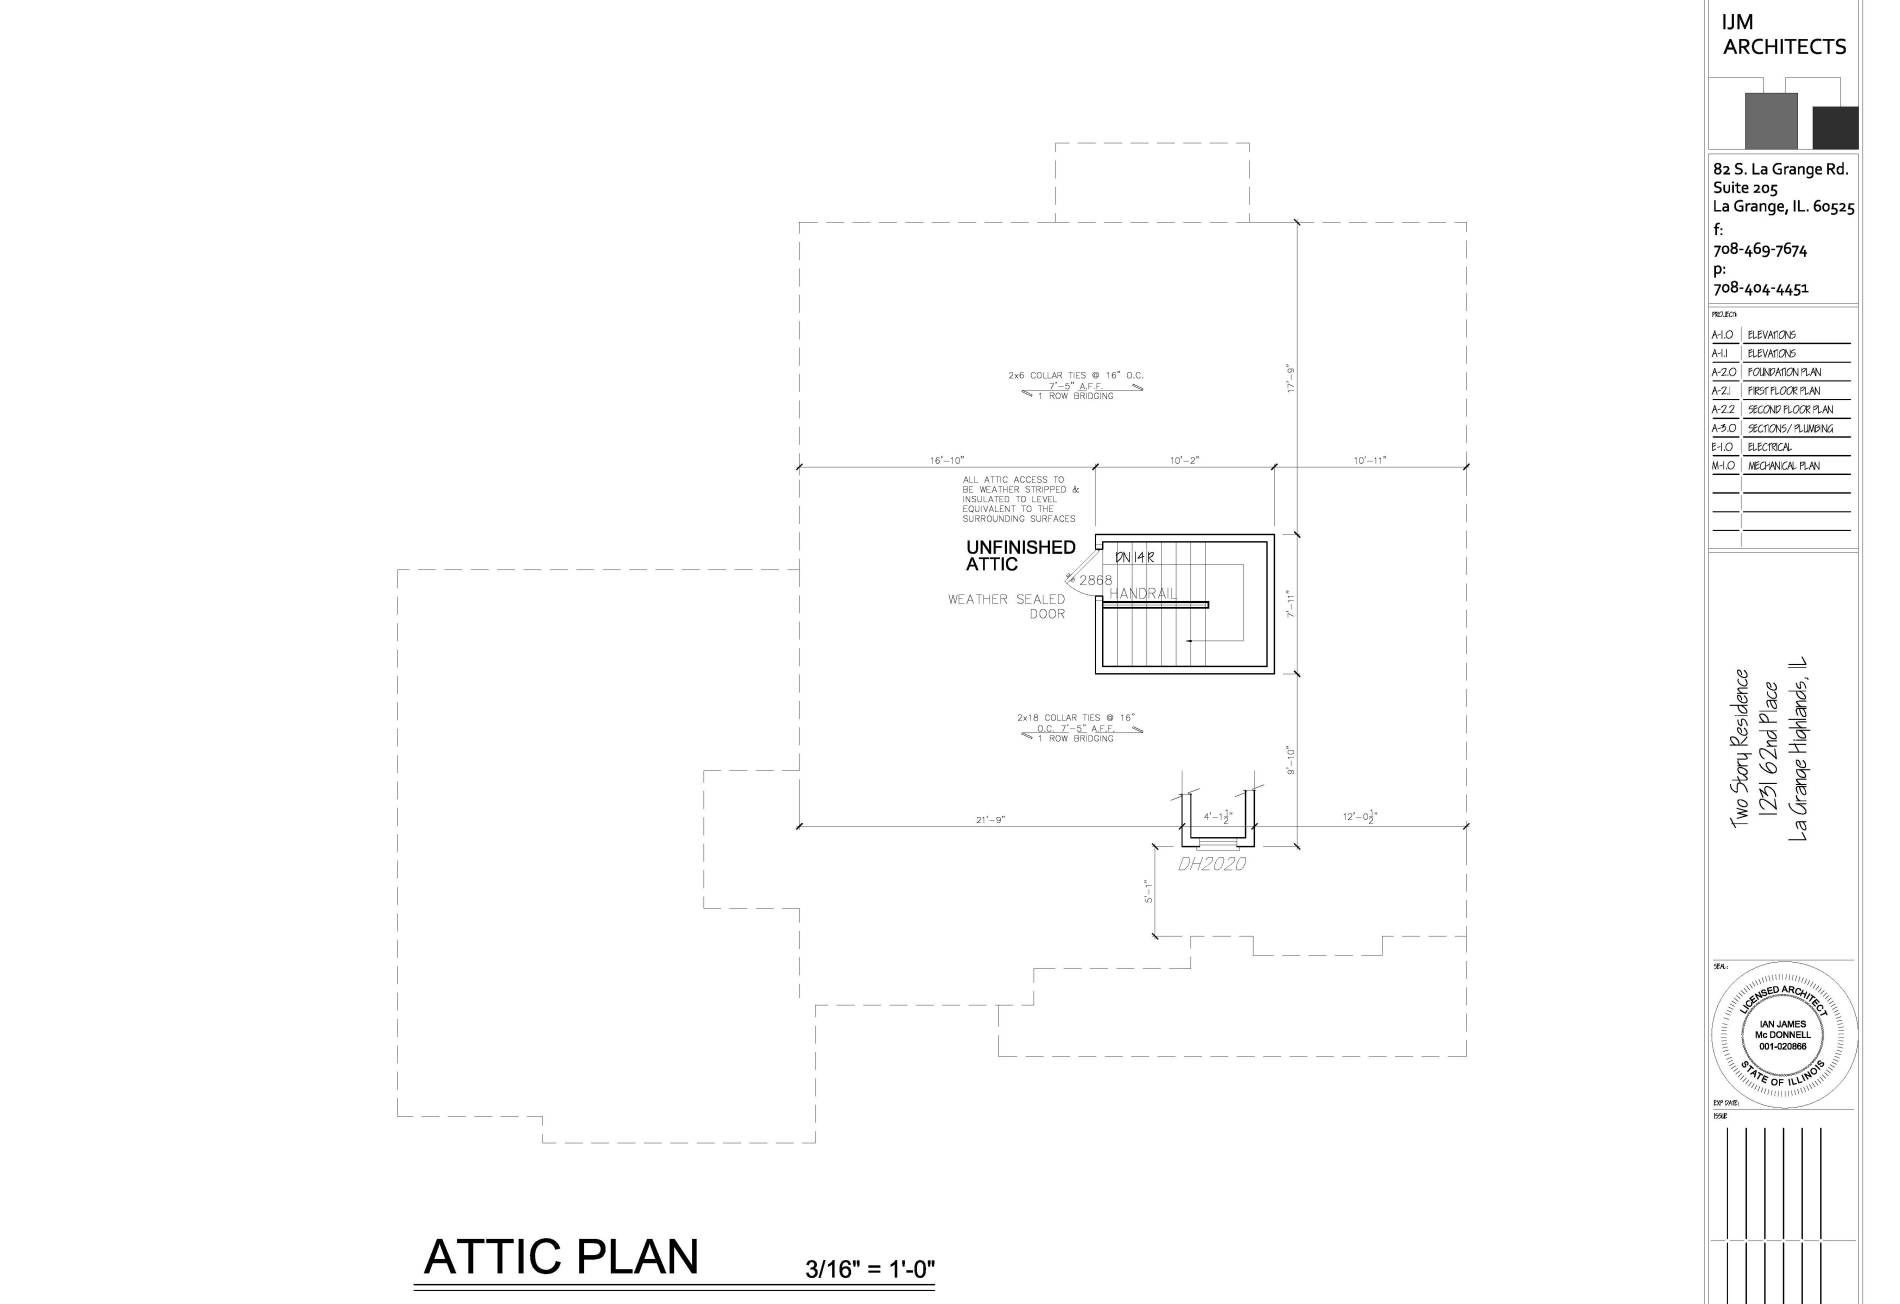 1231 62nd Pl LaGrange Drawings_export_attic